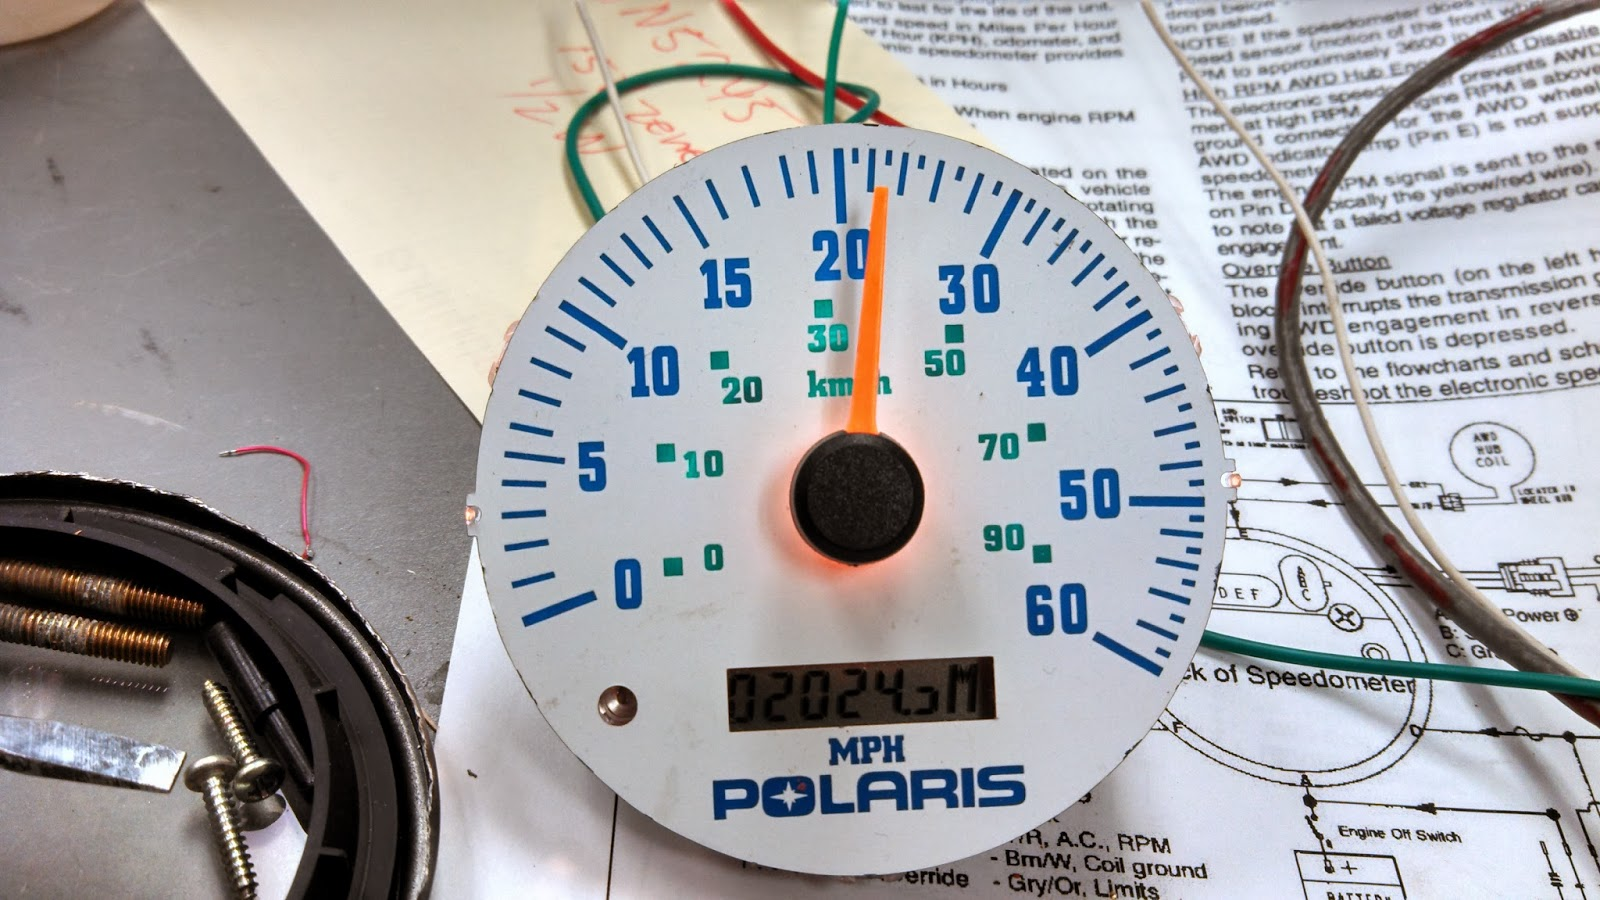 KA7OEI's blog: Repair of the speedometer on a Polaris